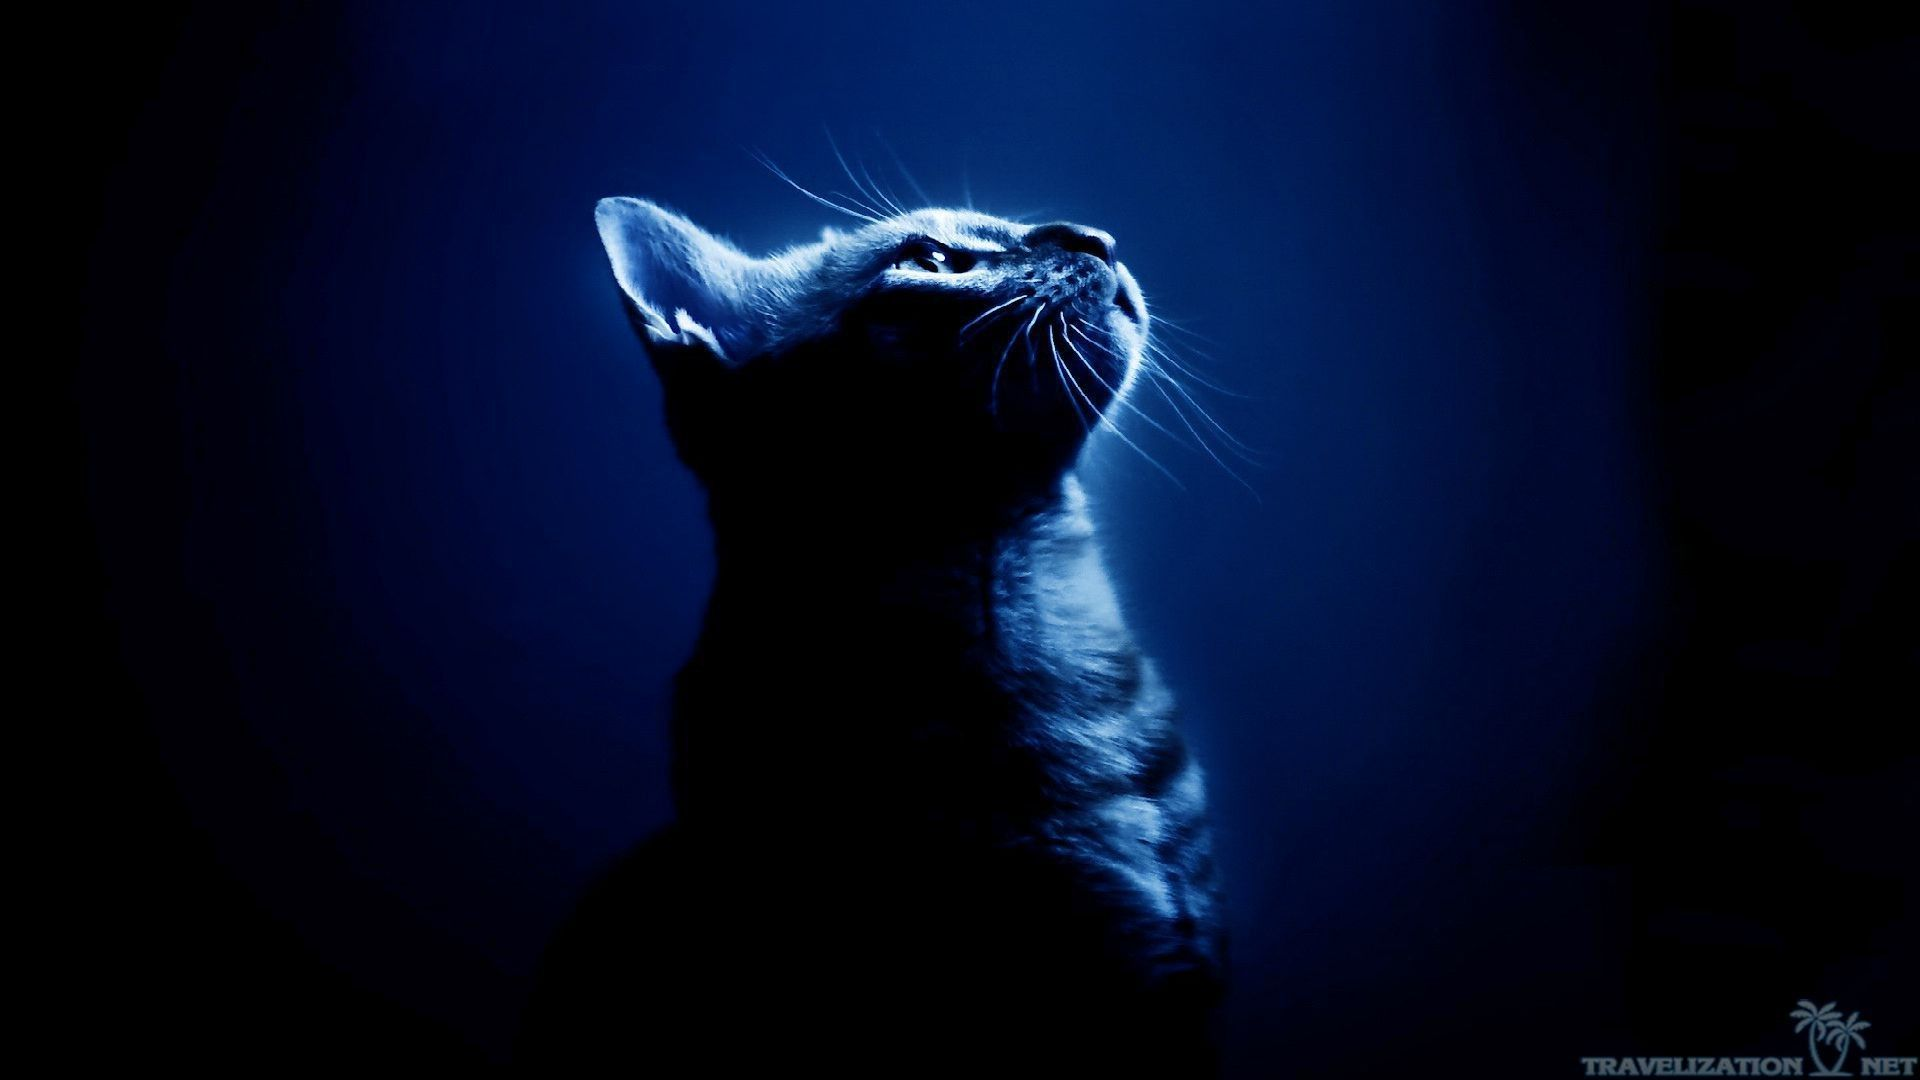 1920x1080 Amazingly Cool Cats Wallpapers 1920x1080px Cat Background Cat Wallpaper Cool Cats